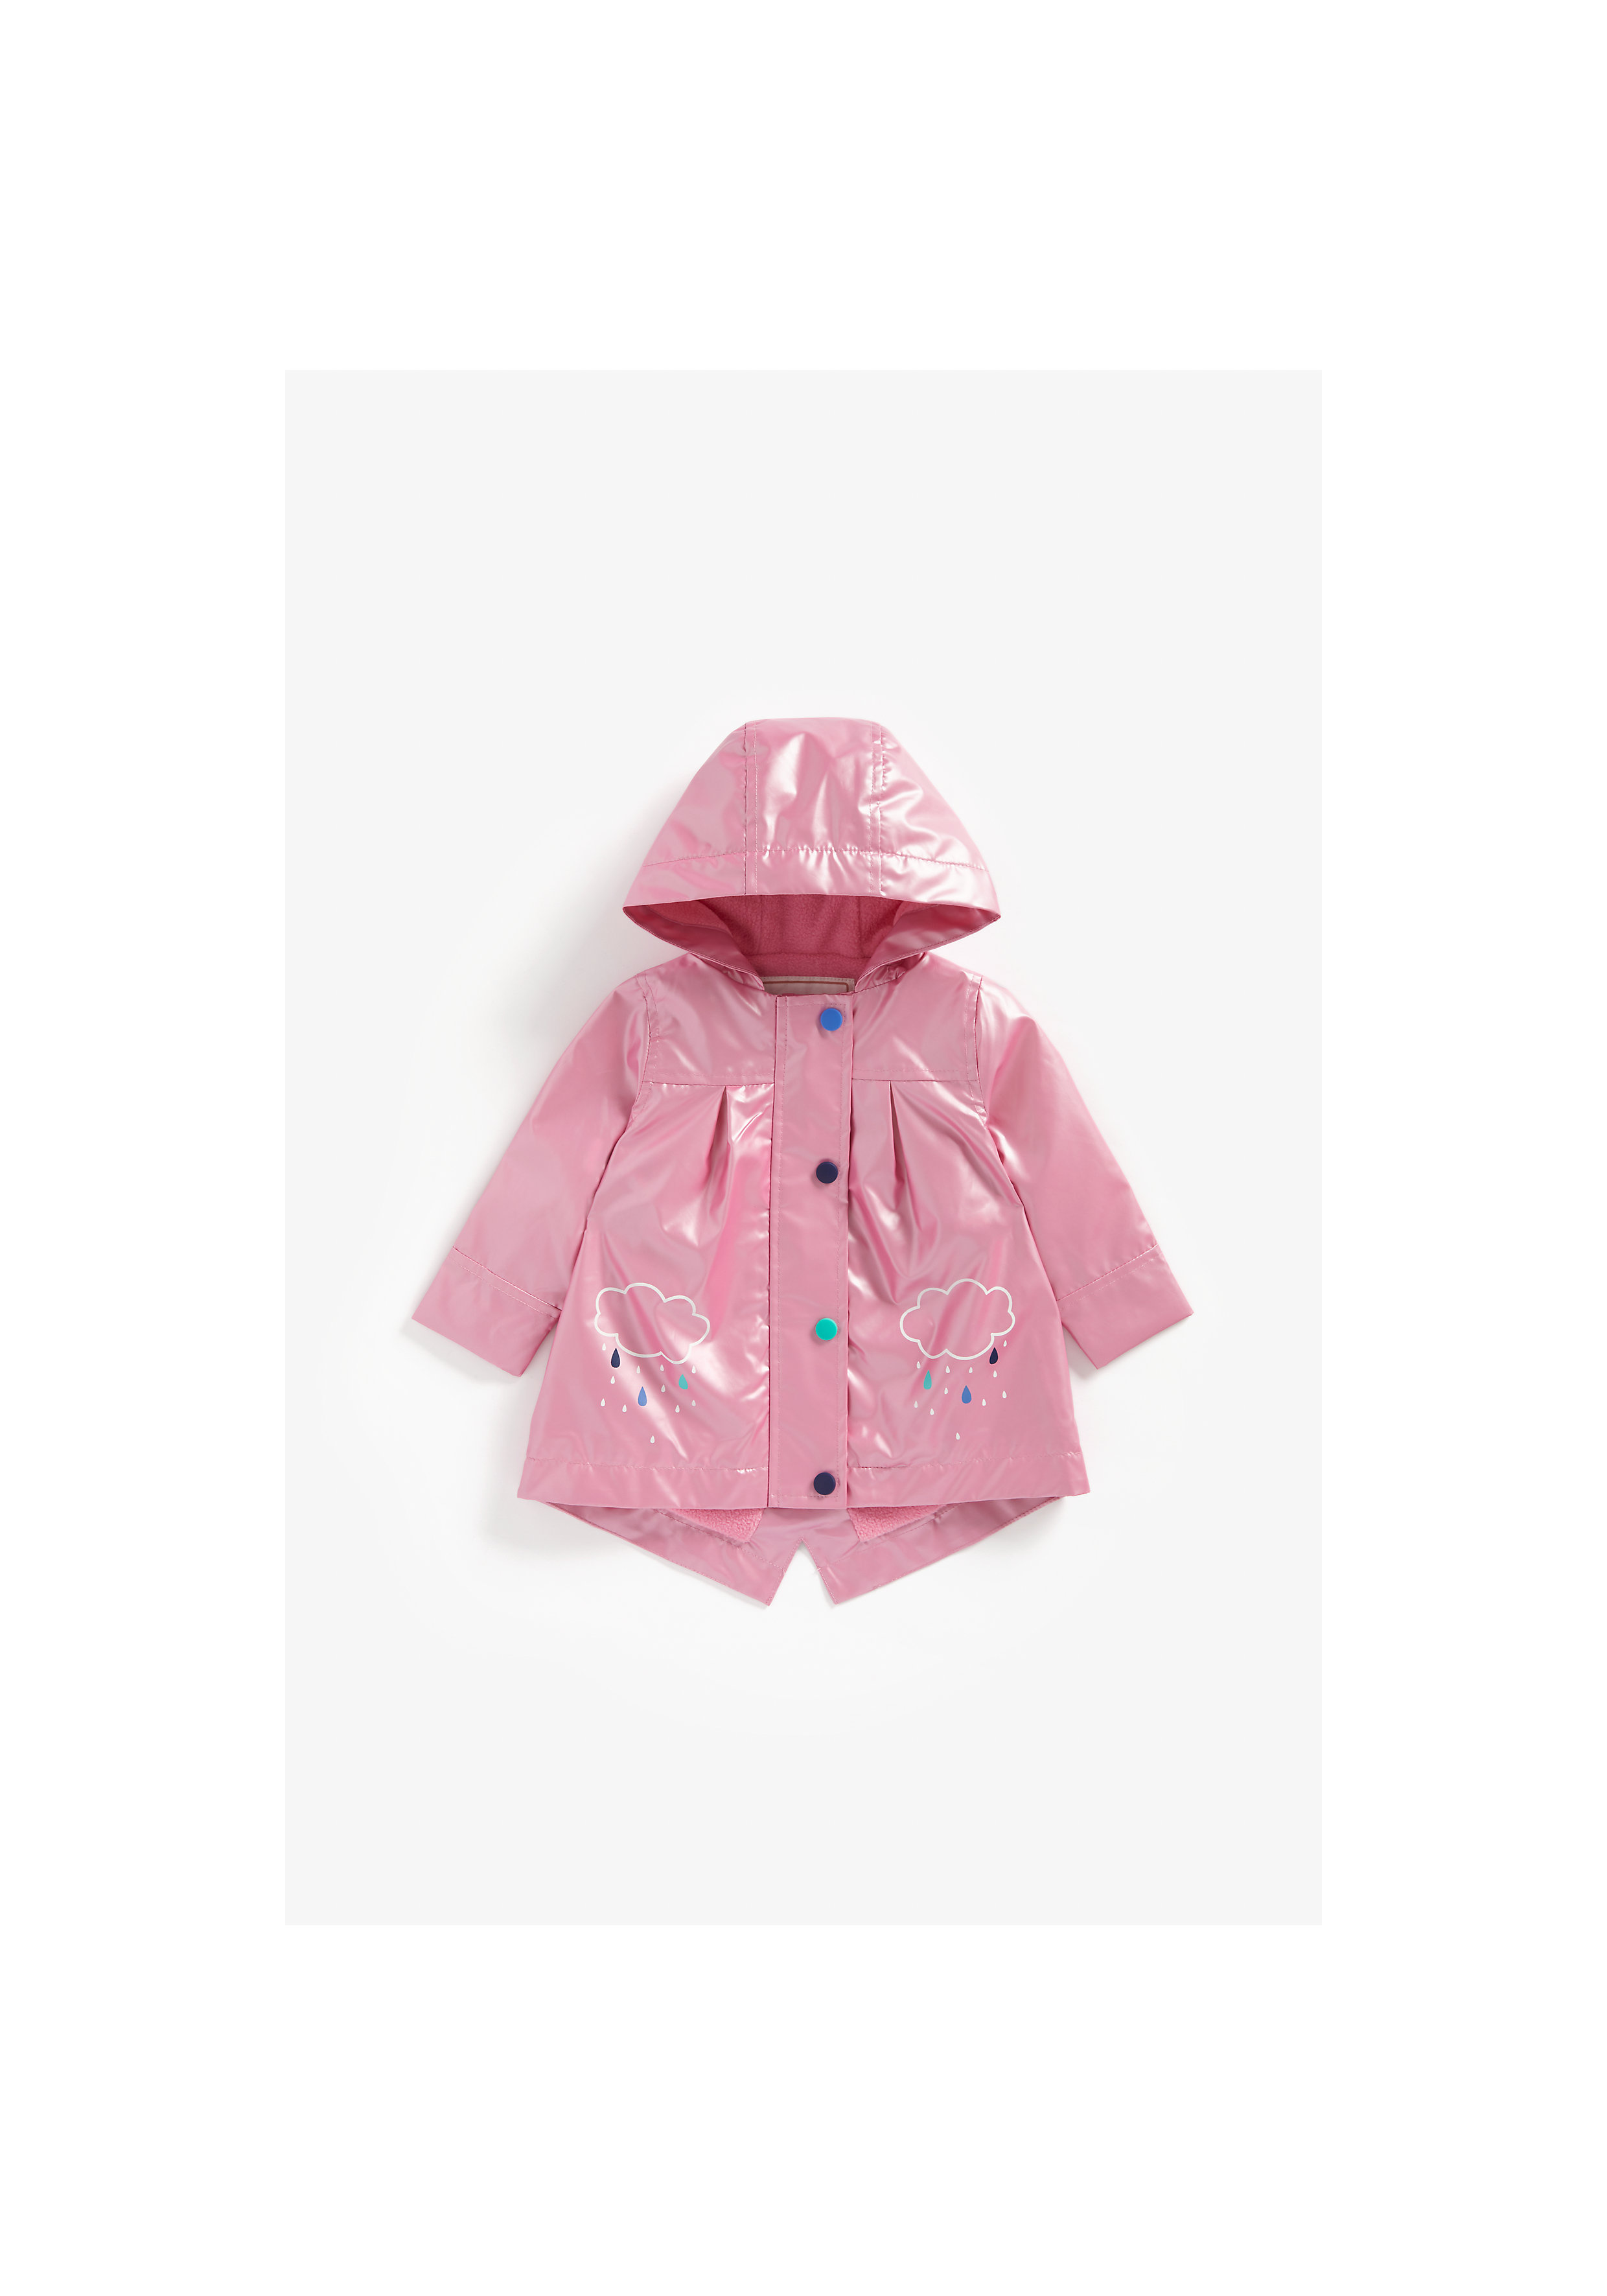 Mothercare | Girls Full Sleeves Rubberized Coat Jersey Lined - Pink